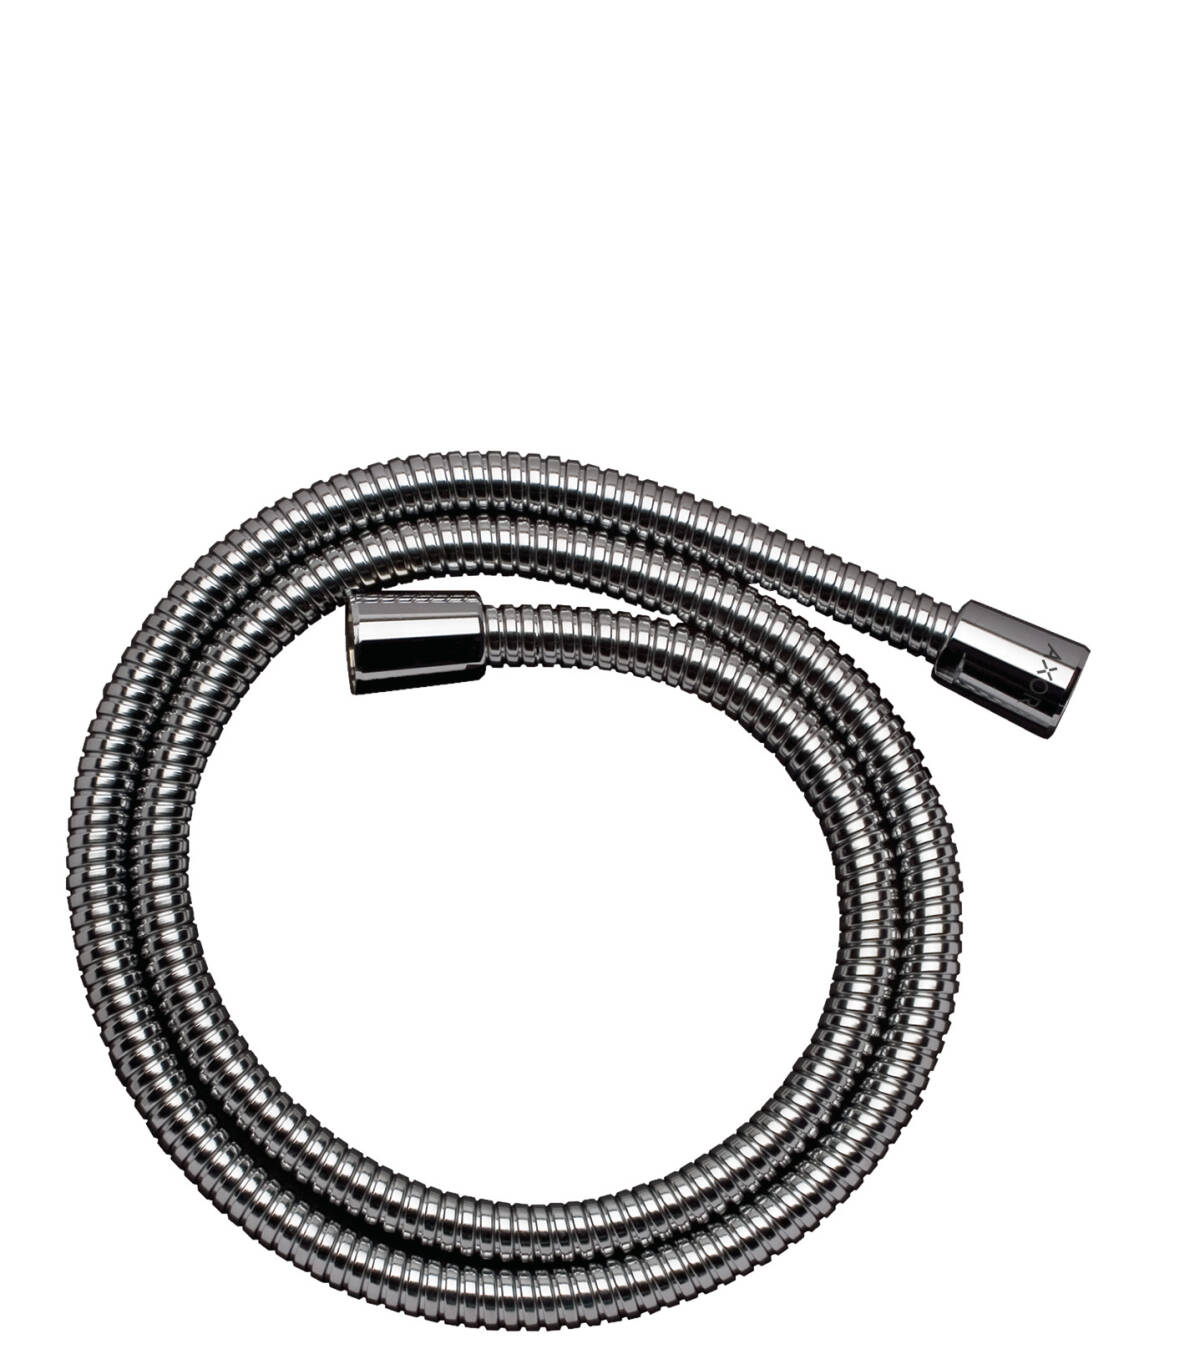 Metal shower hose 2.00 m, Chrome, 28120000